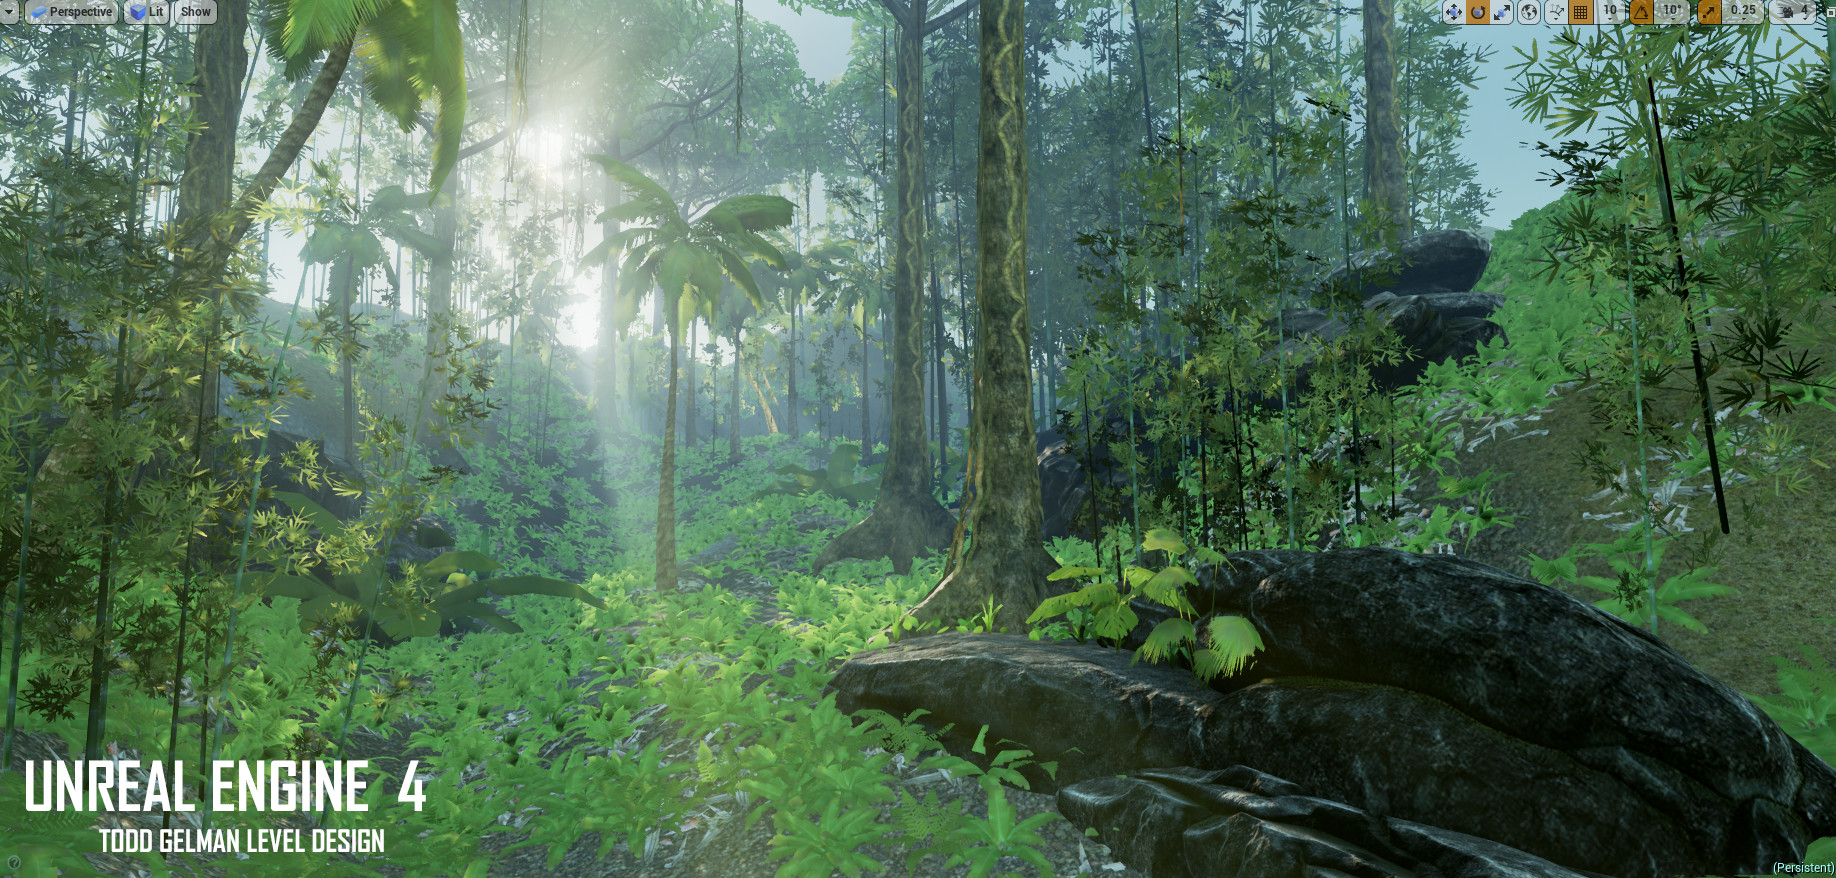 Artstation Unreal Engine Level Design Environment Design Todd Gelman